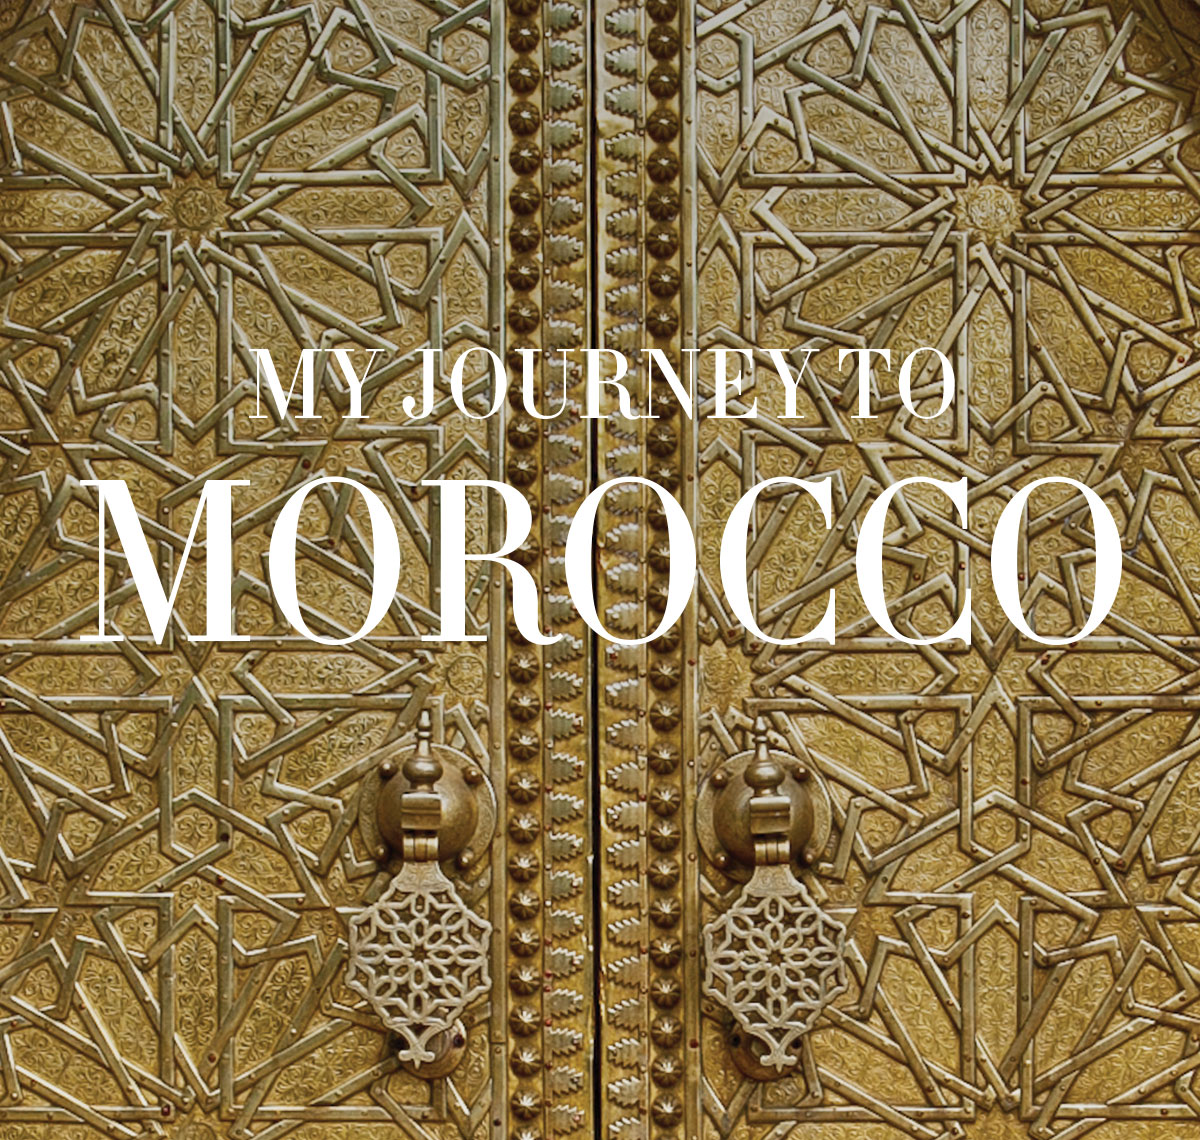 My journey to Morocco - Designer Ava Manukyan journeyed to Morocco in search of inspiration for her latest breathtaking collections. - Introducing Sahuri, Mamounia, and Tamal... - Designed by Ava Manukyan - Shop Now